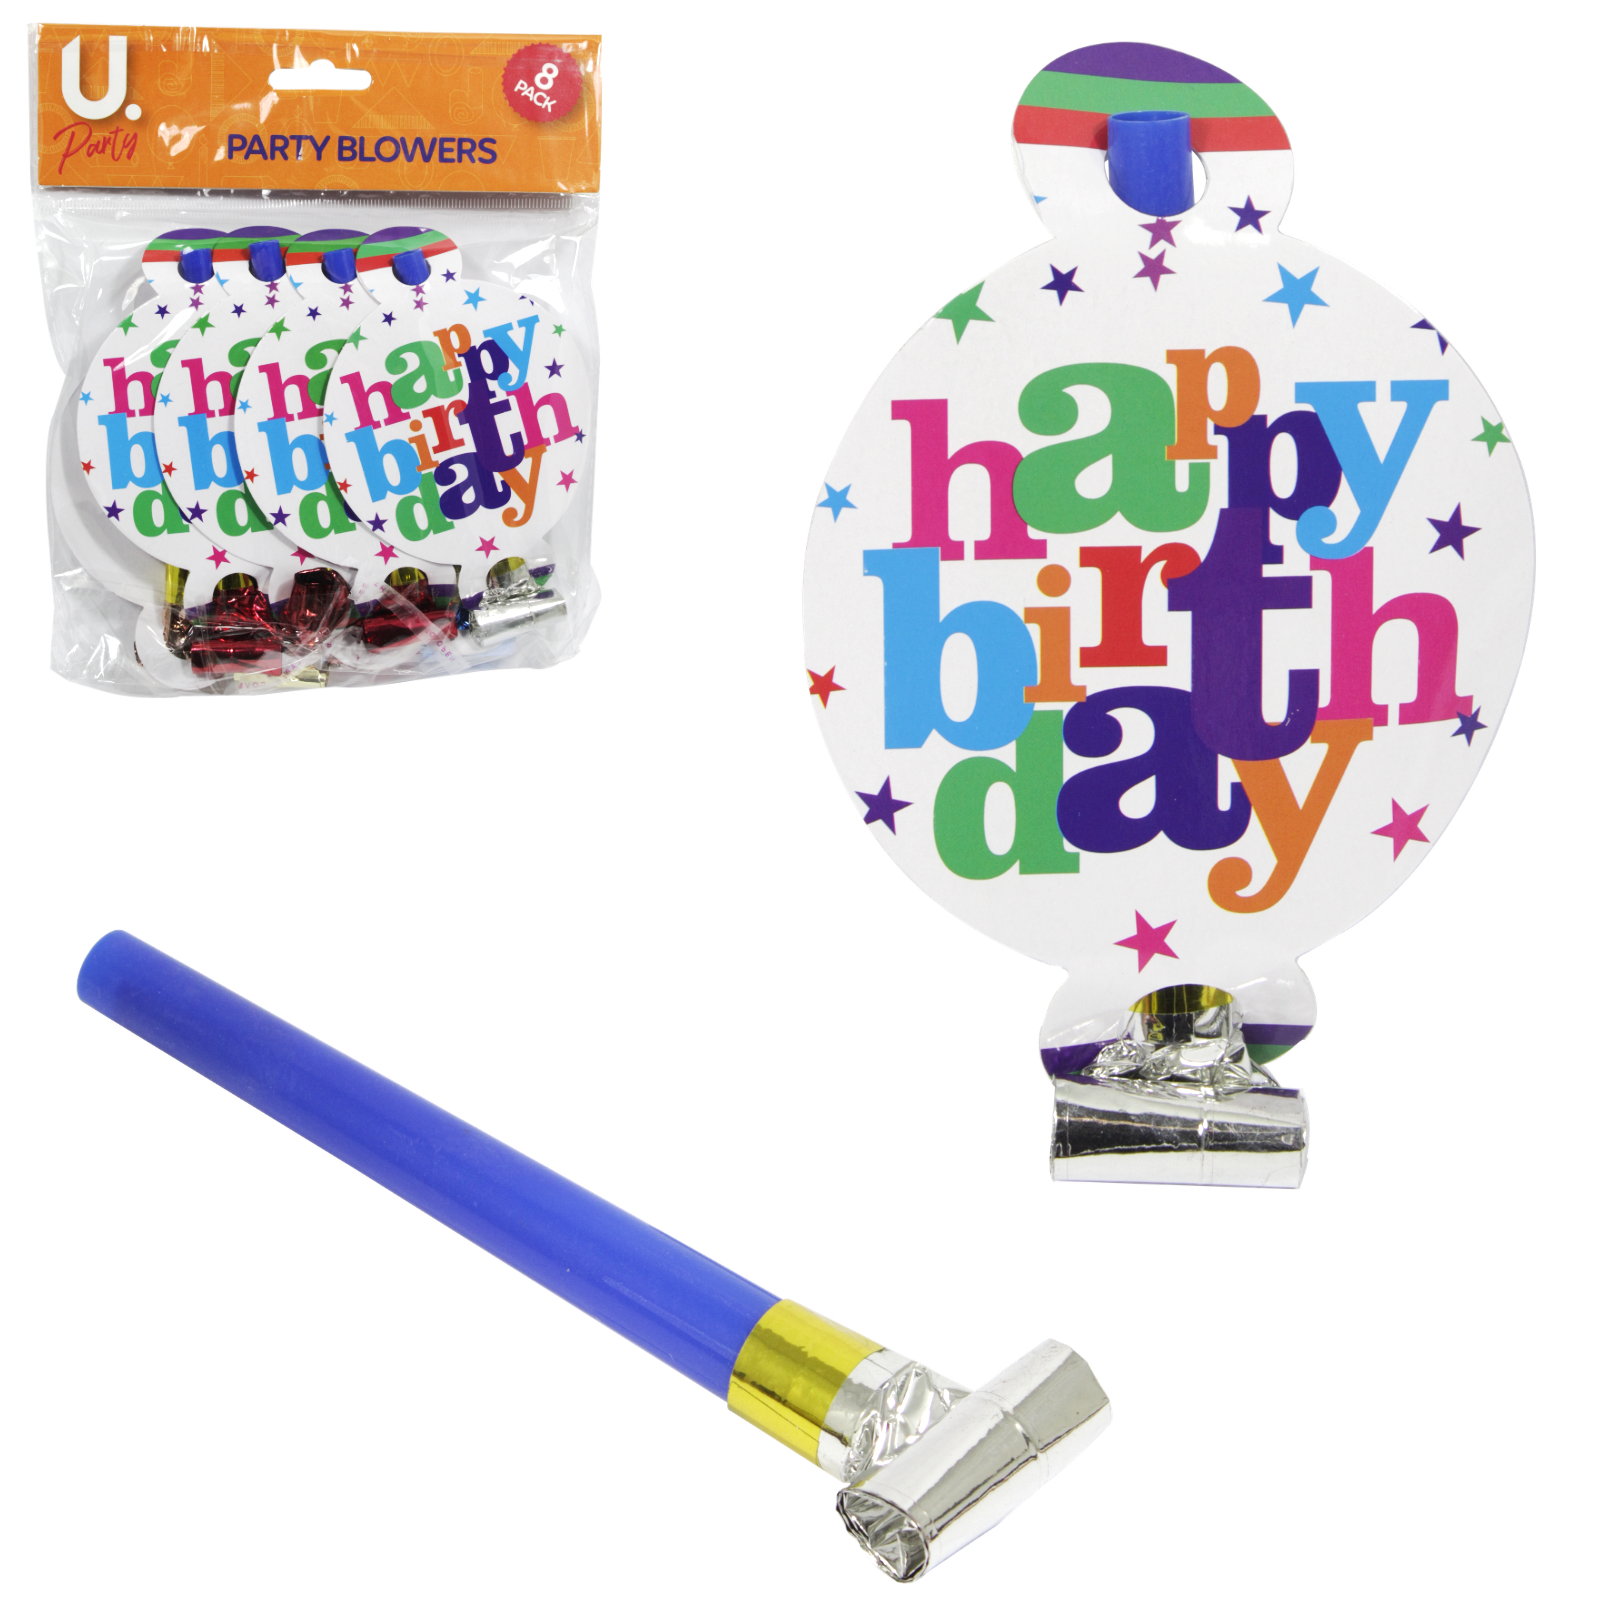 HAPPY BIRTHDAY PARTY BLOWERS 10S